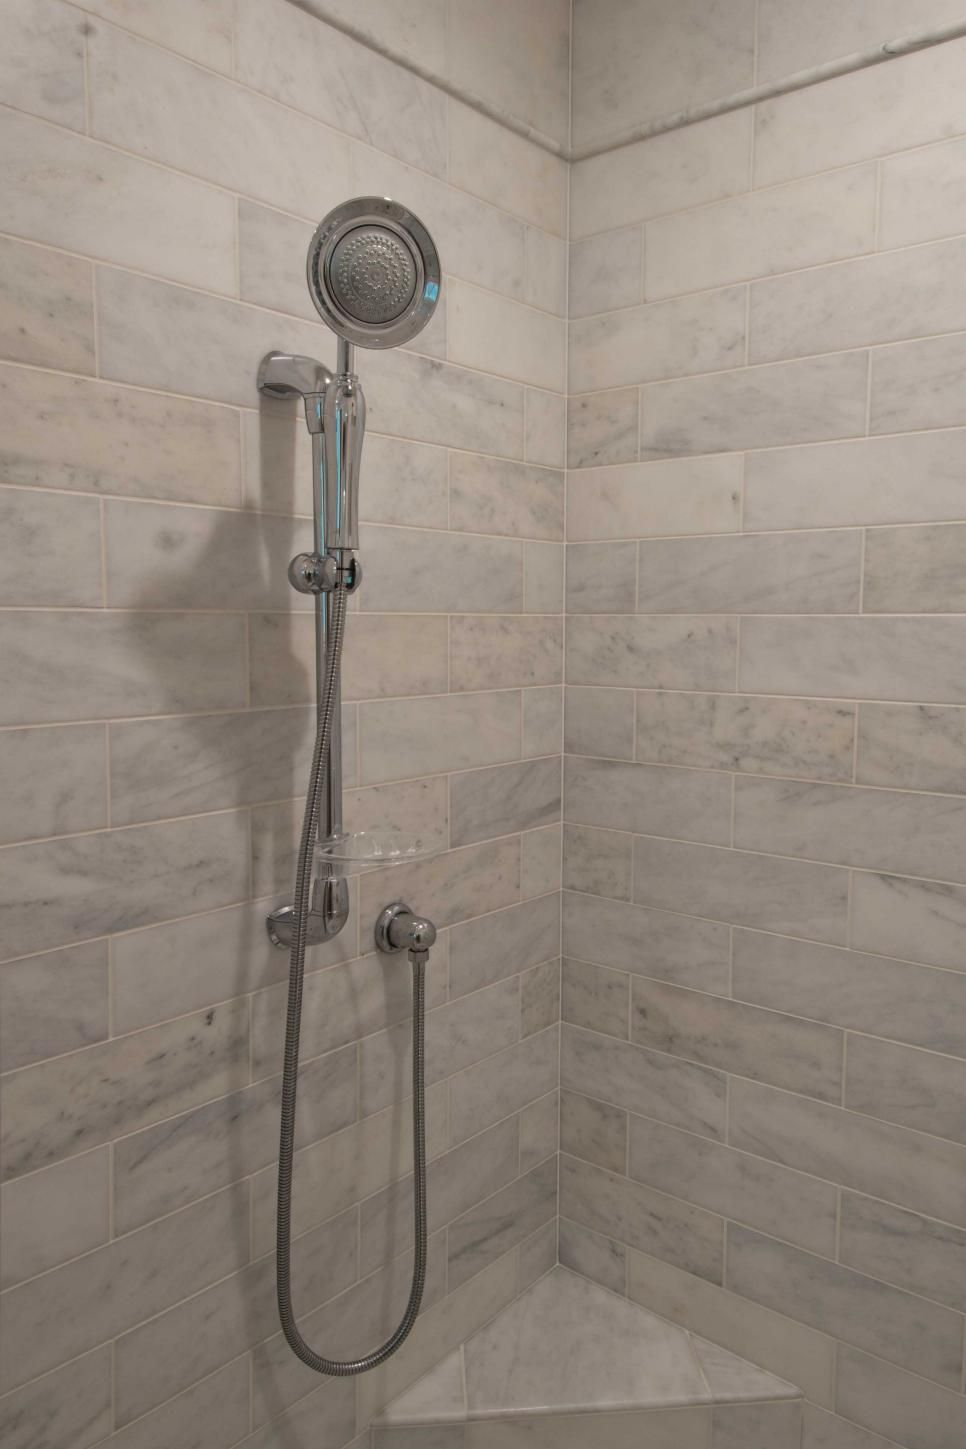 Complete Handheld Shower Heads Buying Guide Right Here:  Http://walkinshowers.org